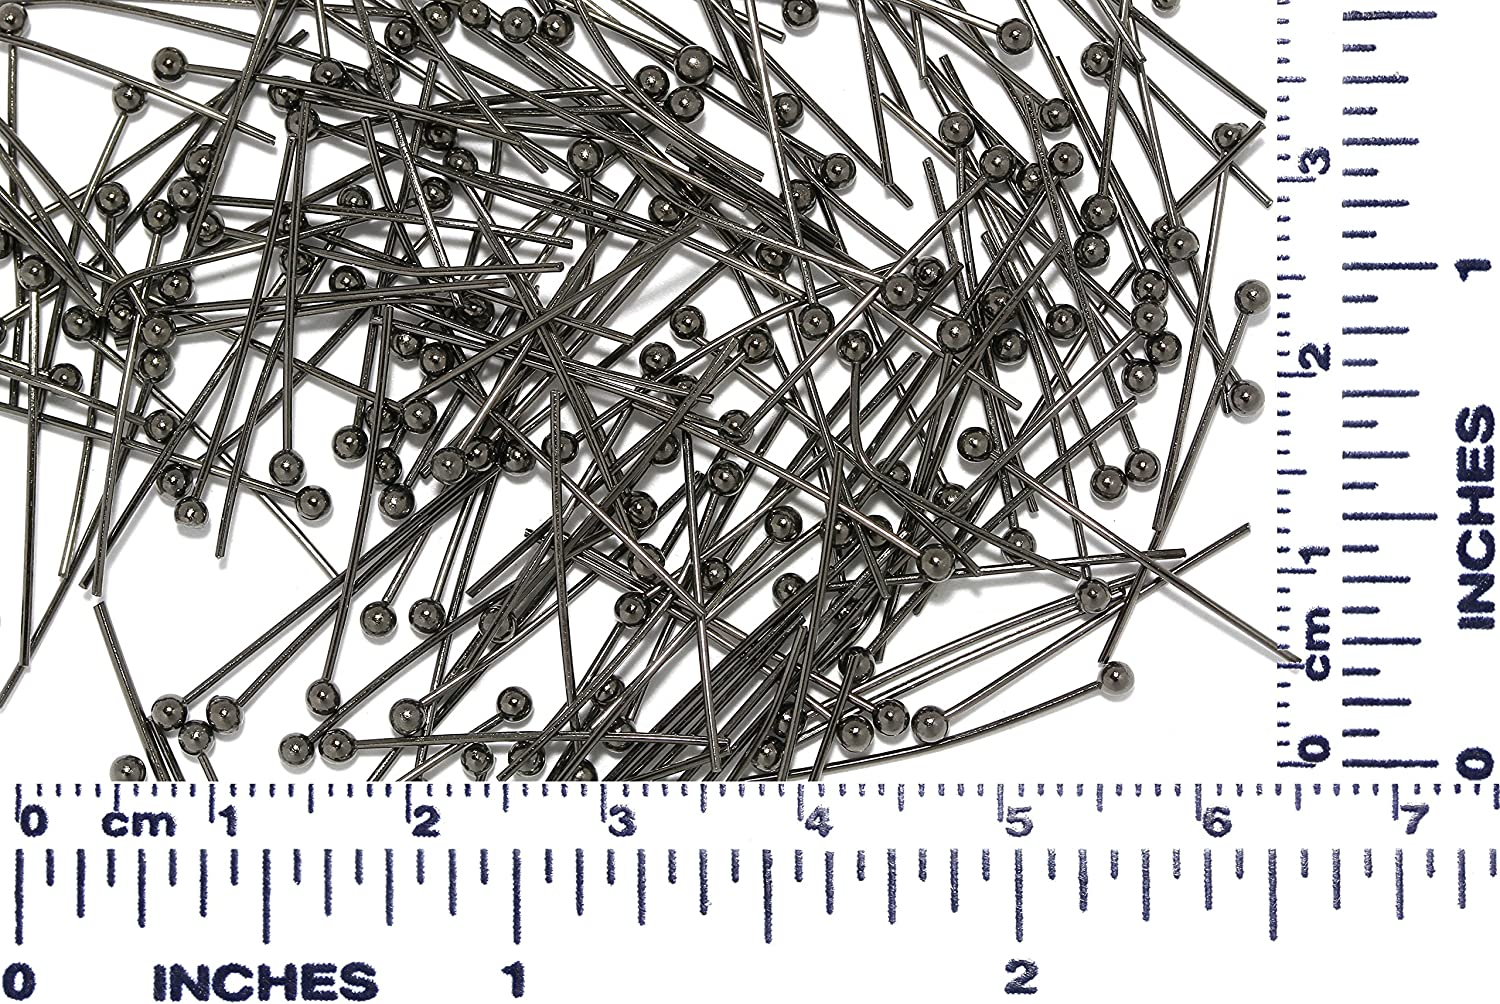 100pcs 20mm Bendable Jewelry Making Headpin Part Ball Point Gray Tone AnsonsImages